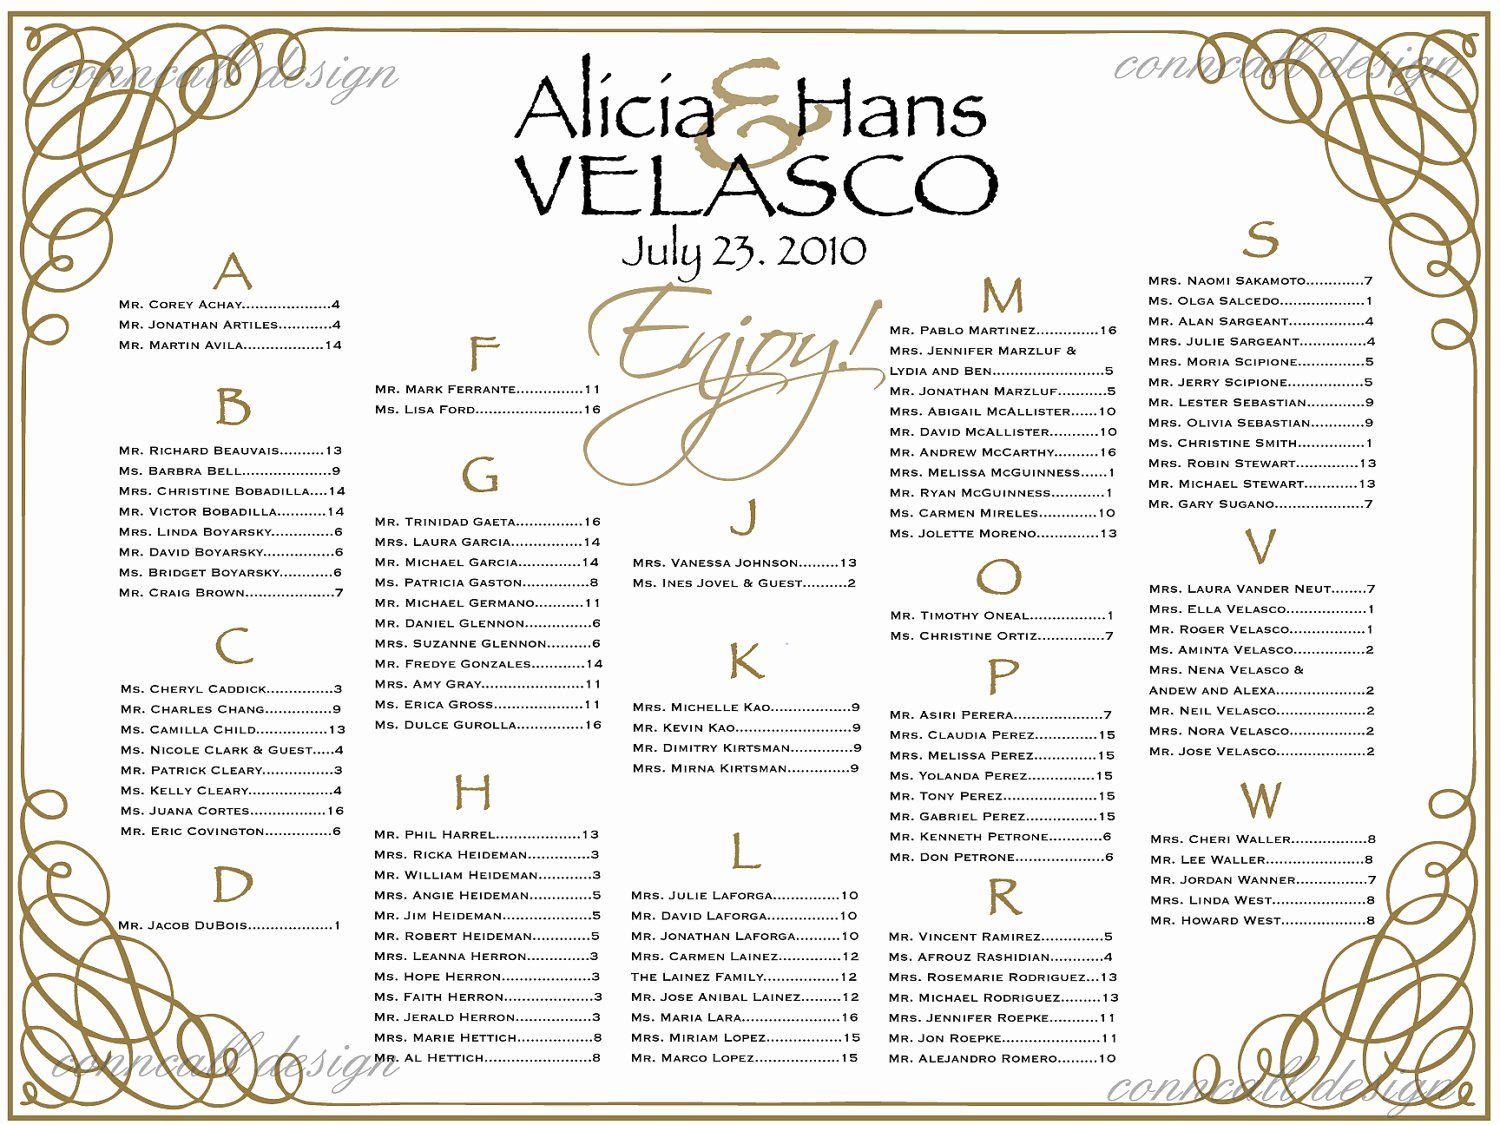 Seating Chart Poster Template Best Of Wedding Seating Chart Seating Poster Table by